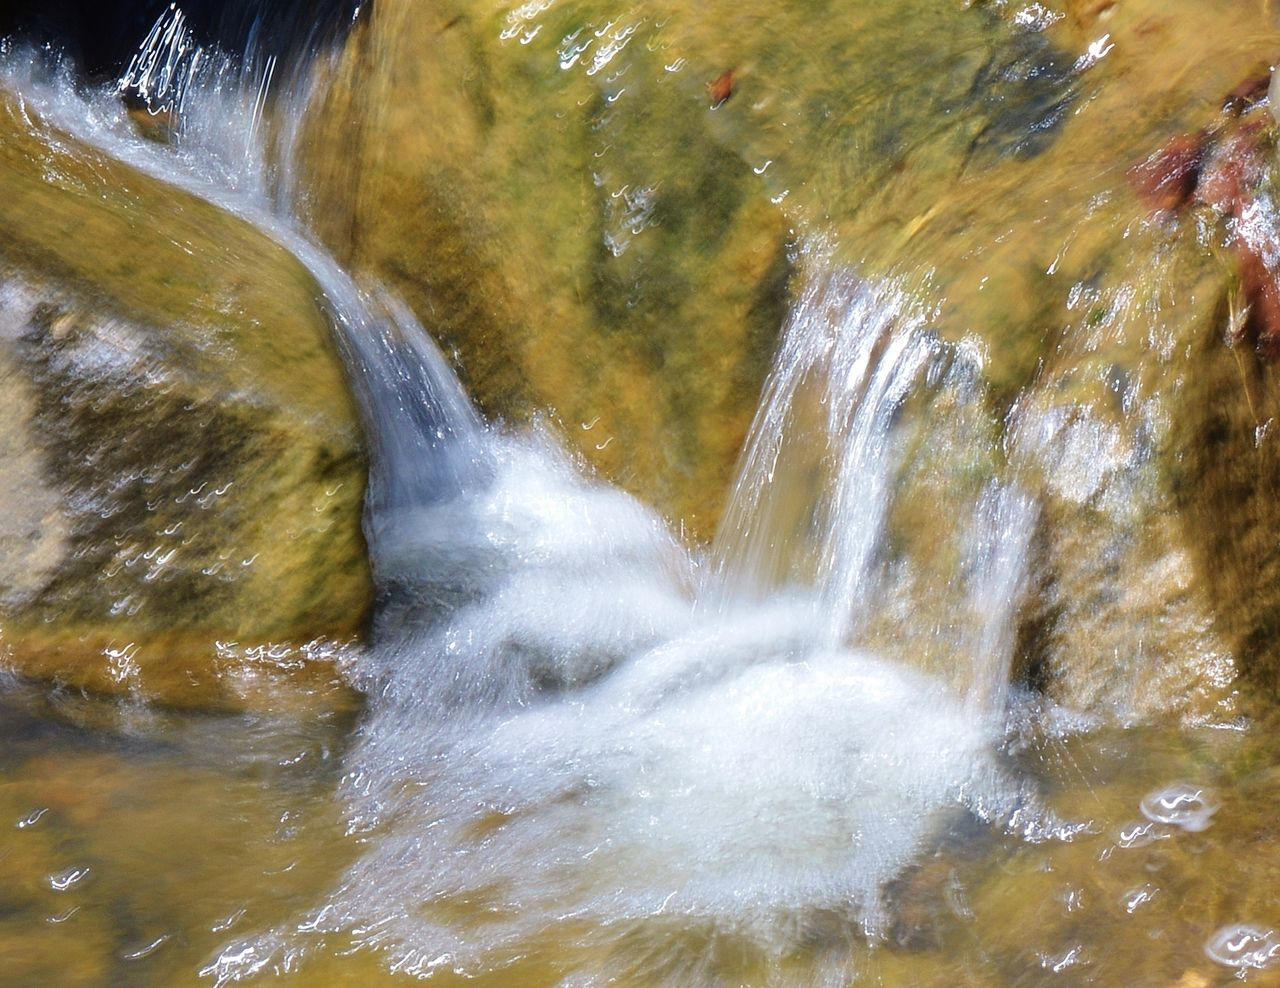 motion, nature, beauty in nature, water, no people, waterfall, day, outdoors, close-up